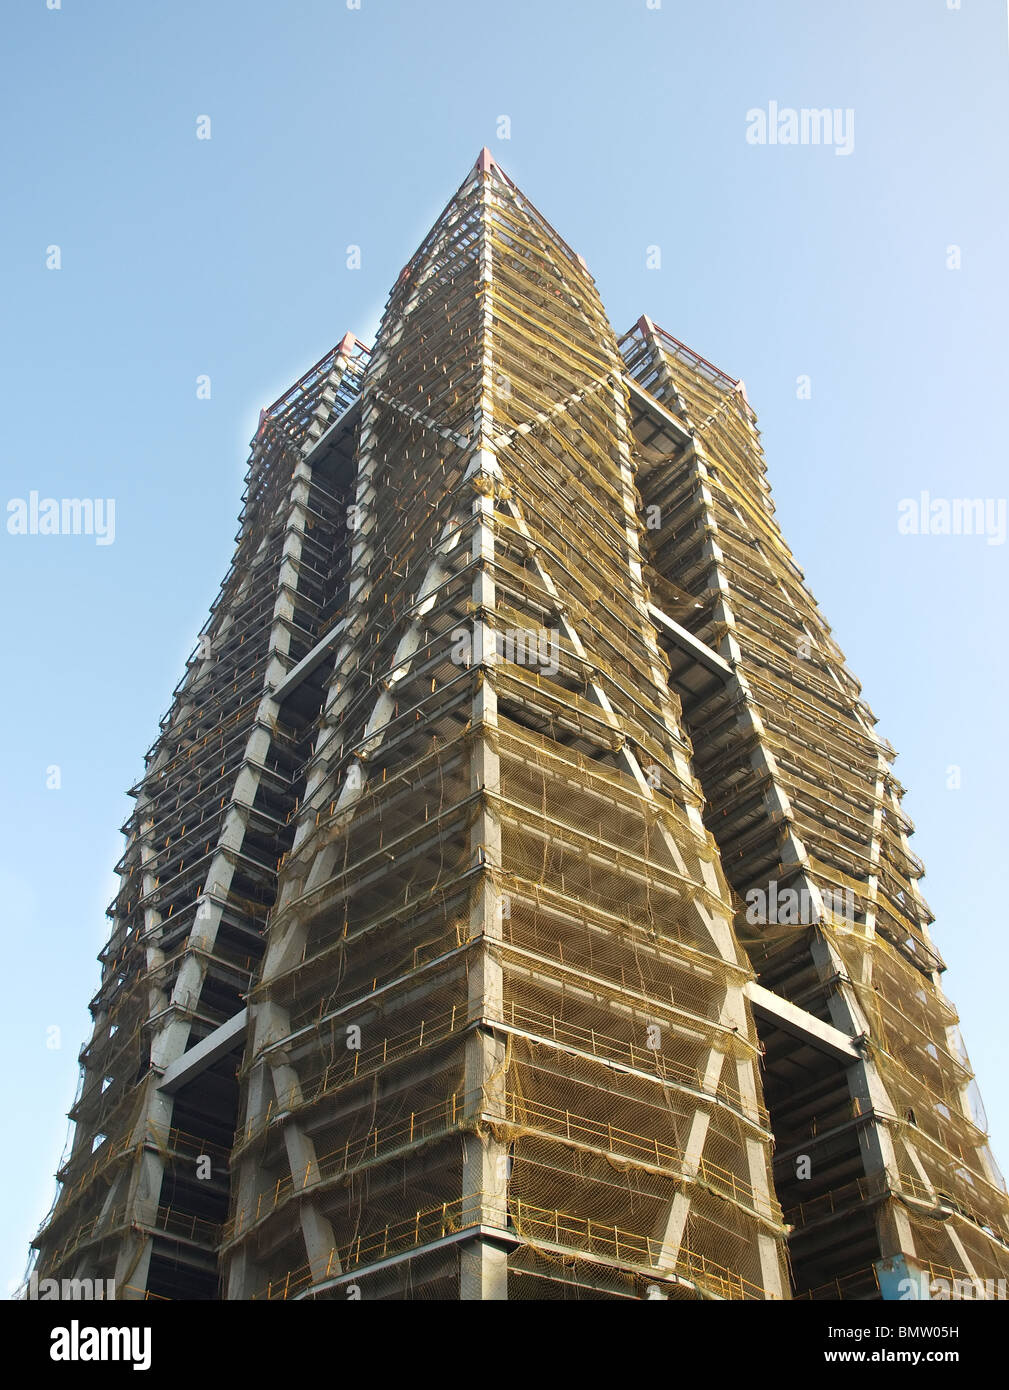 Modern steel structure of a high rise building stock photo for Modern high rise building design